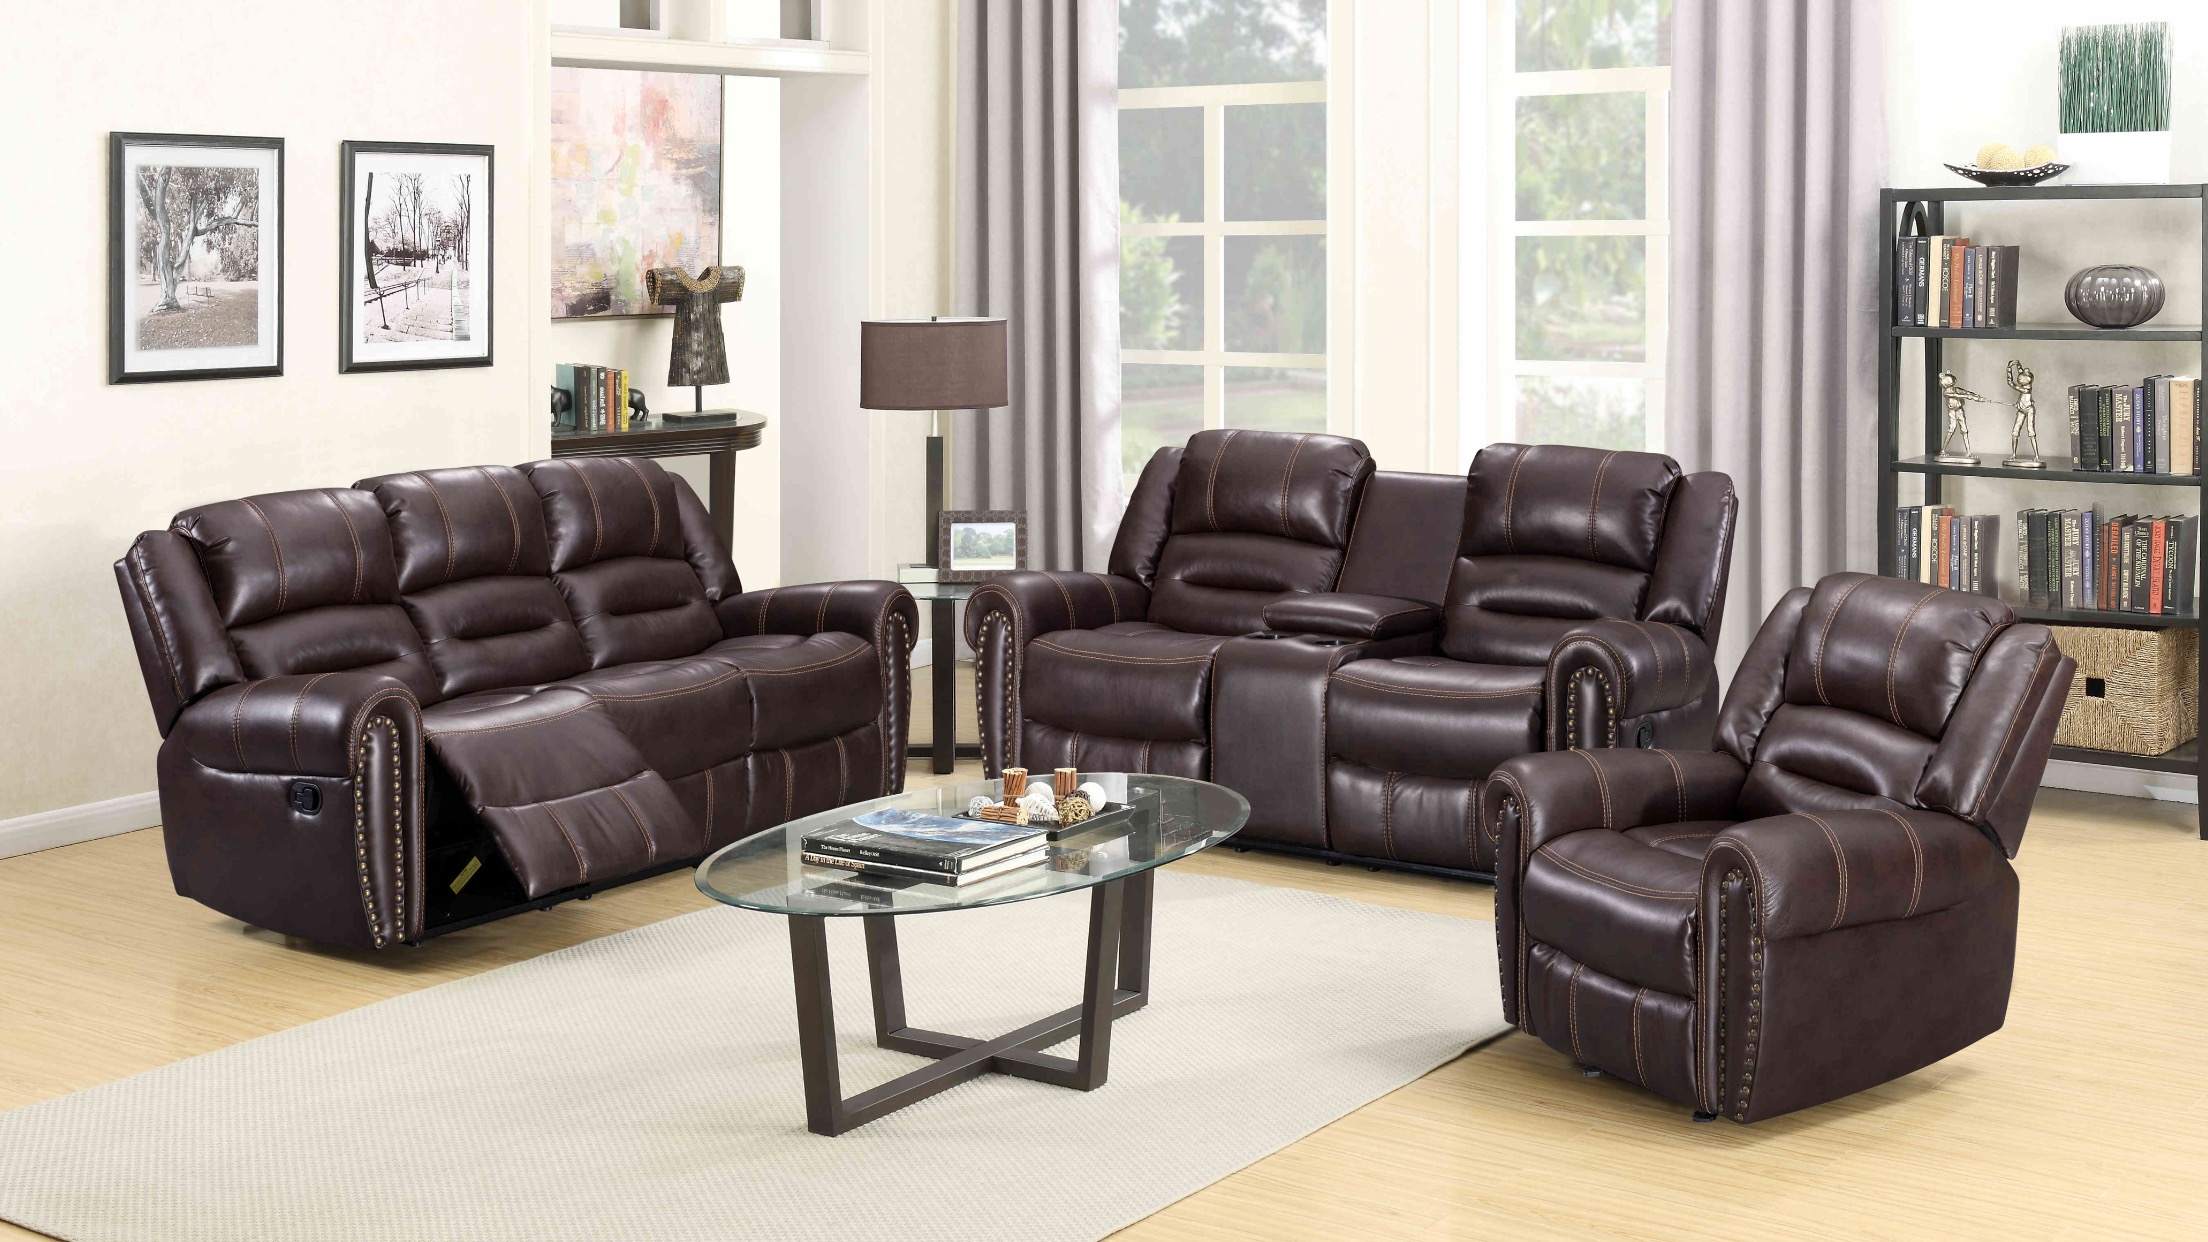 Lexington 3 Pc Leather Reclining Sofa, Loveseat and Recliner